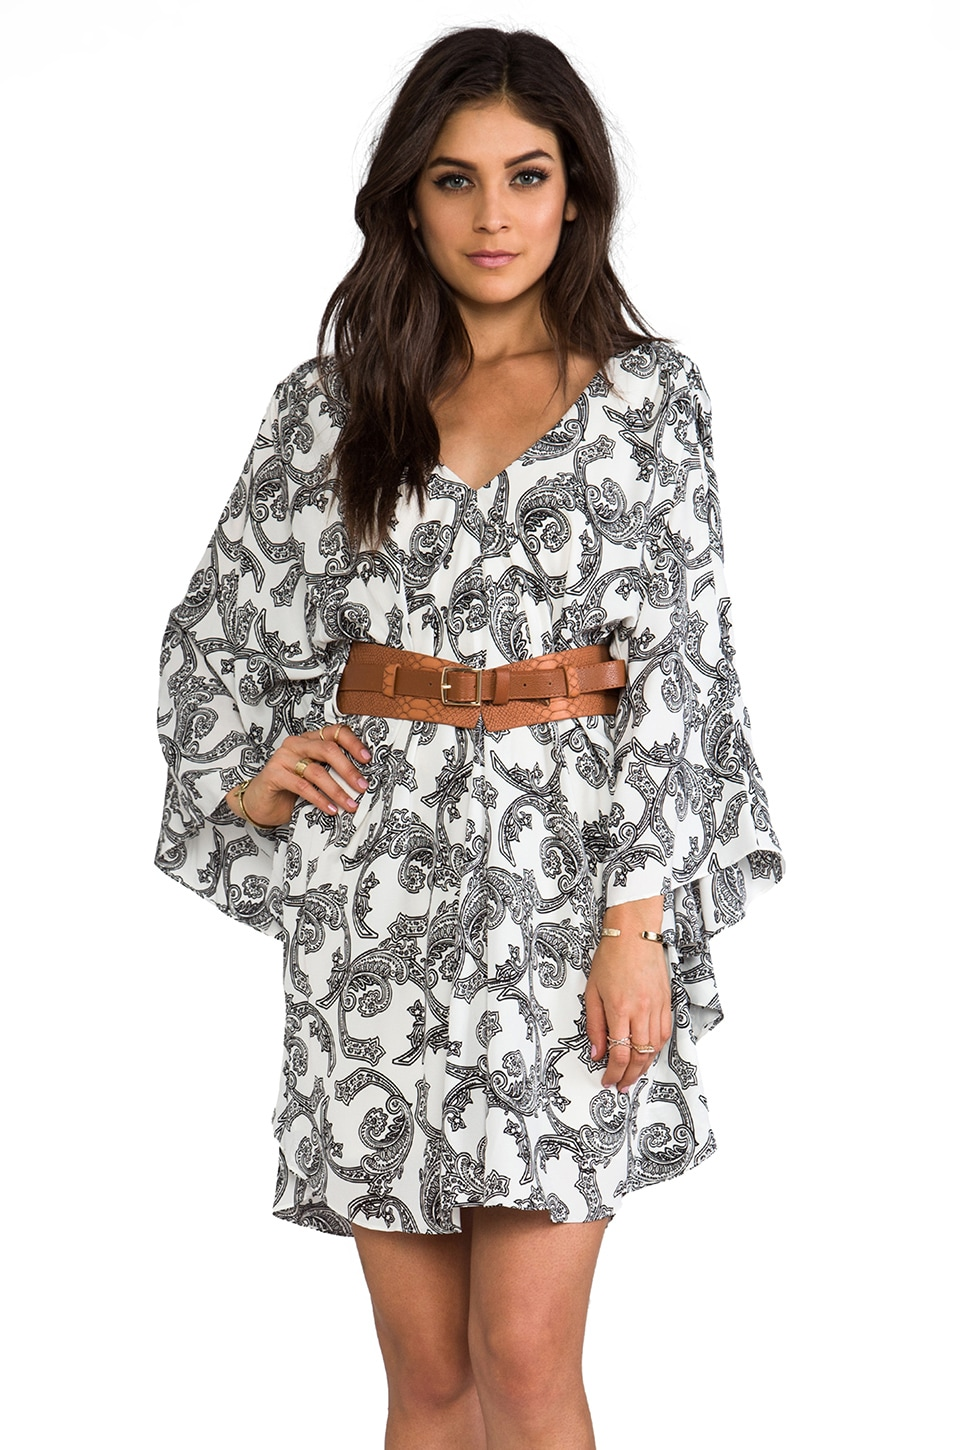 VOOM by Joy Han Kendyll Kimono Dress in White